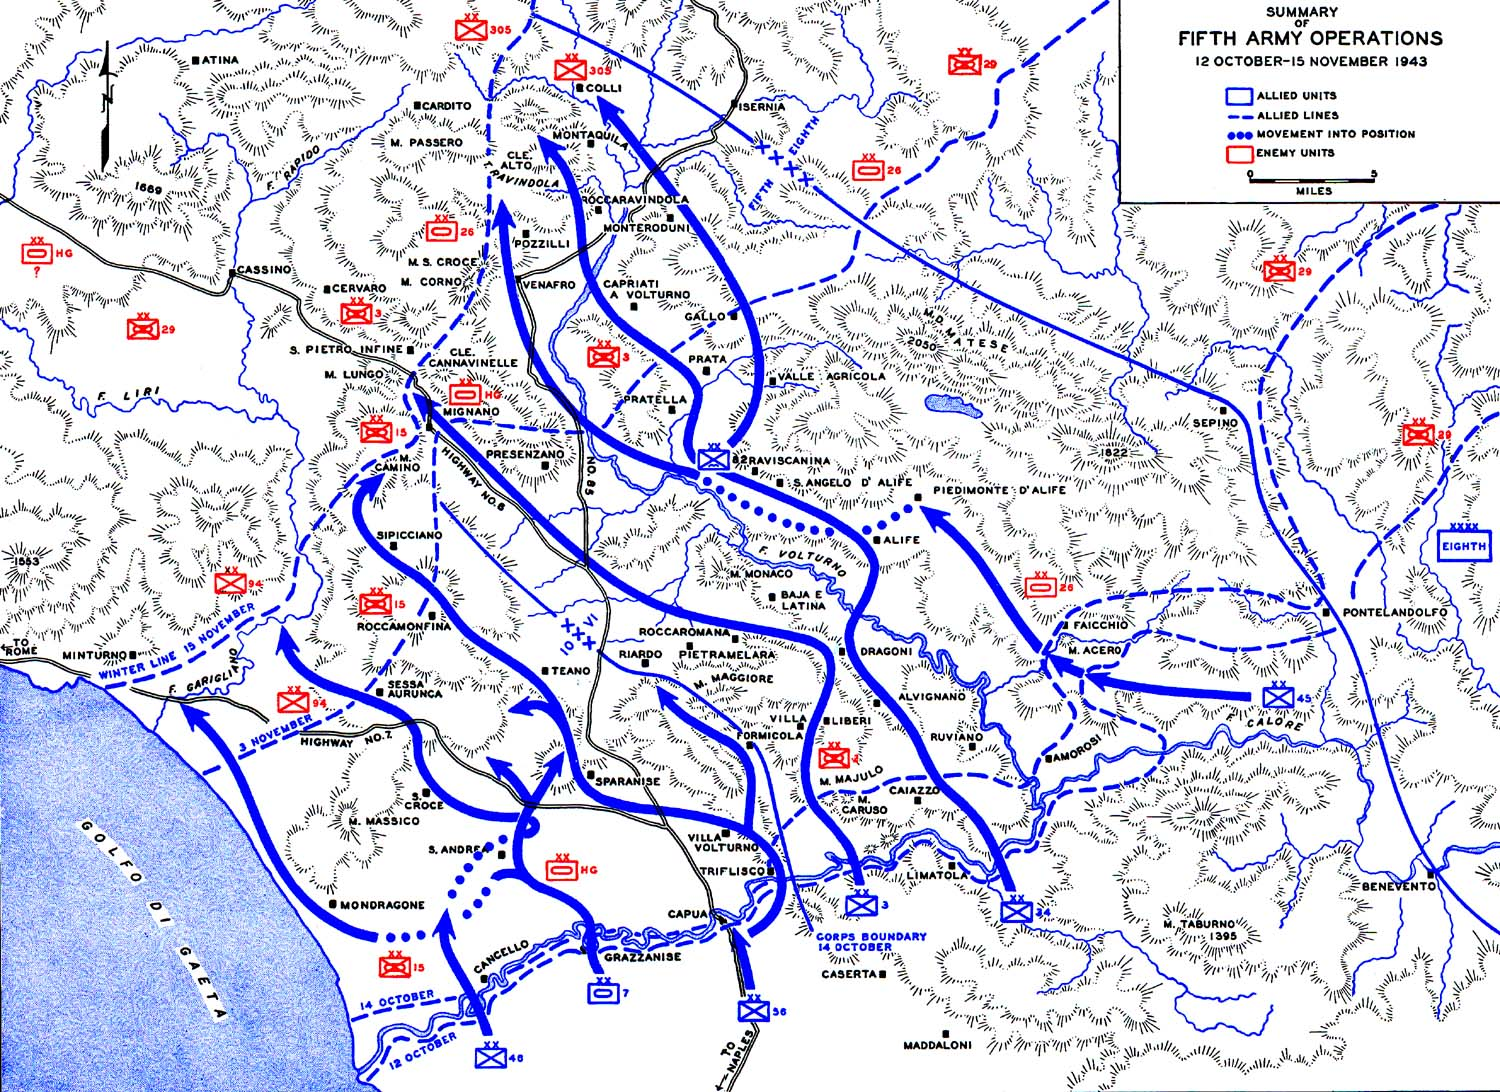 Volturno area; Fifth Army Operations 12 October to 15 November 1943. © This work is in the public domain under the terms of Title 17, Chapter 1, Section 105 of the US Code.